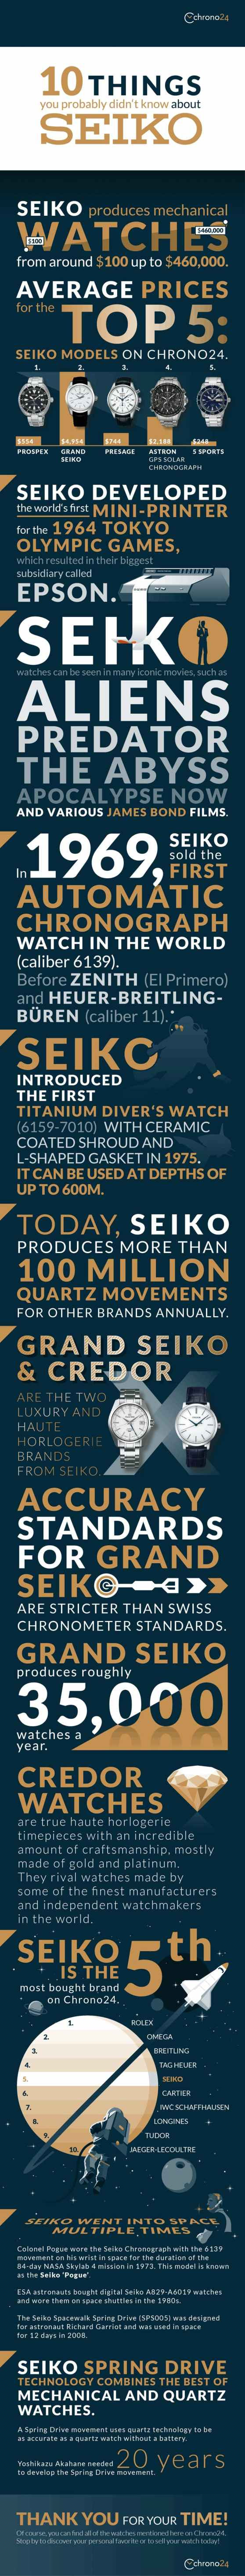 10-things-you-probably-didnt-know-about-Seiko-s